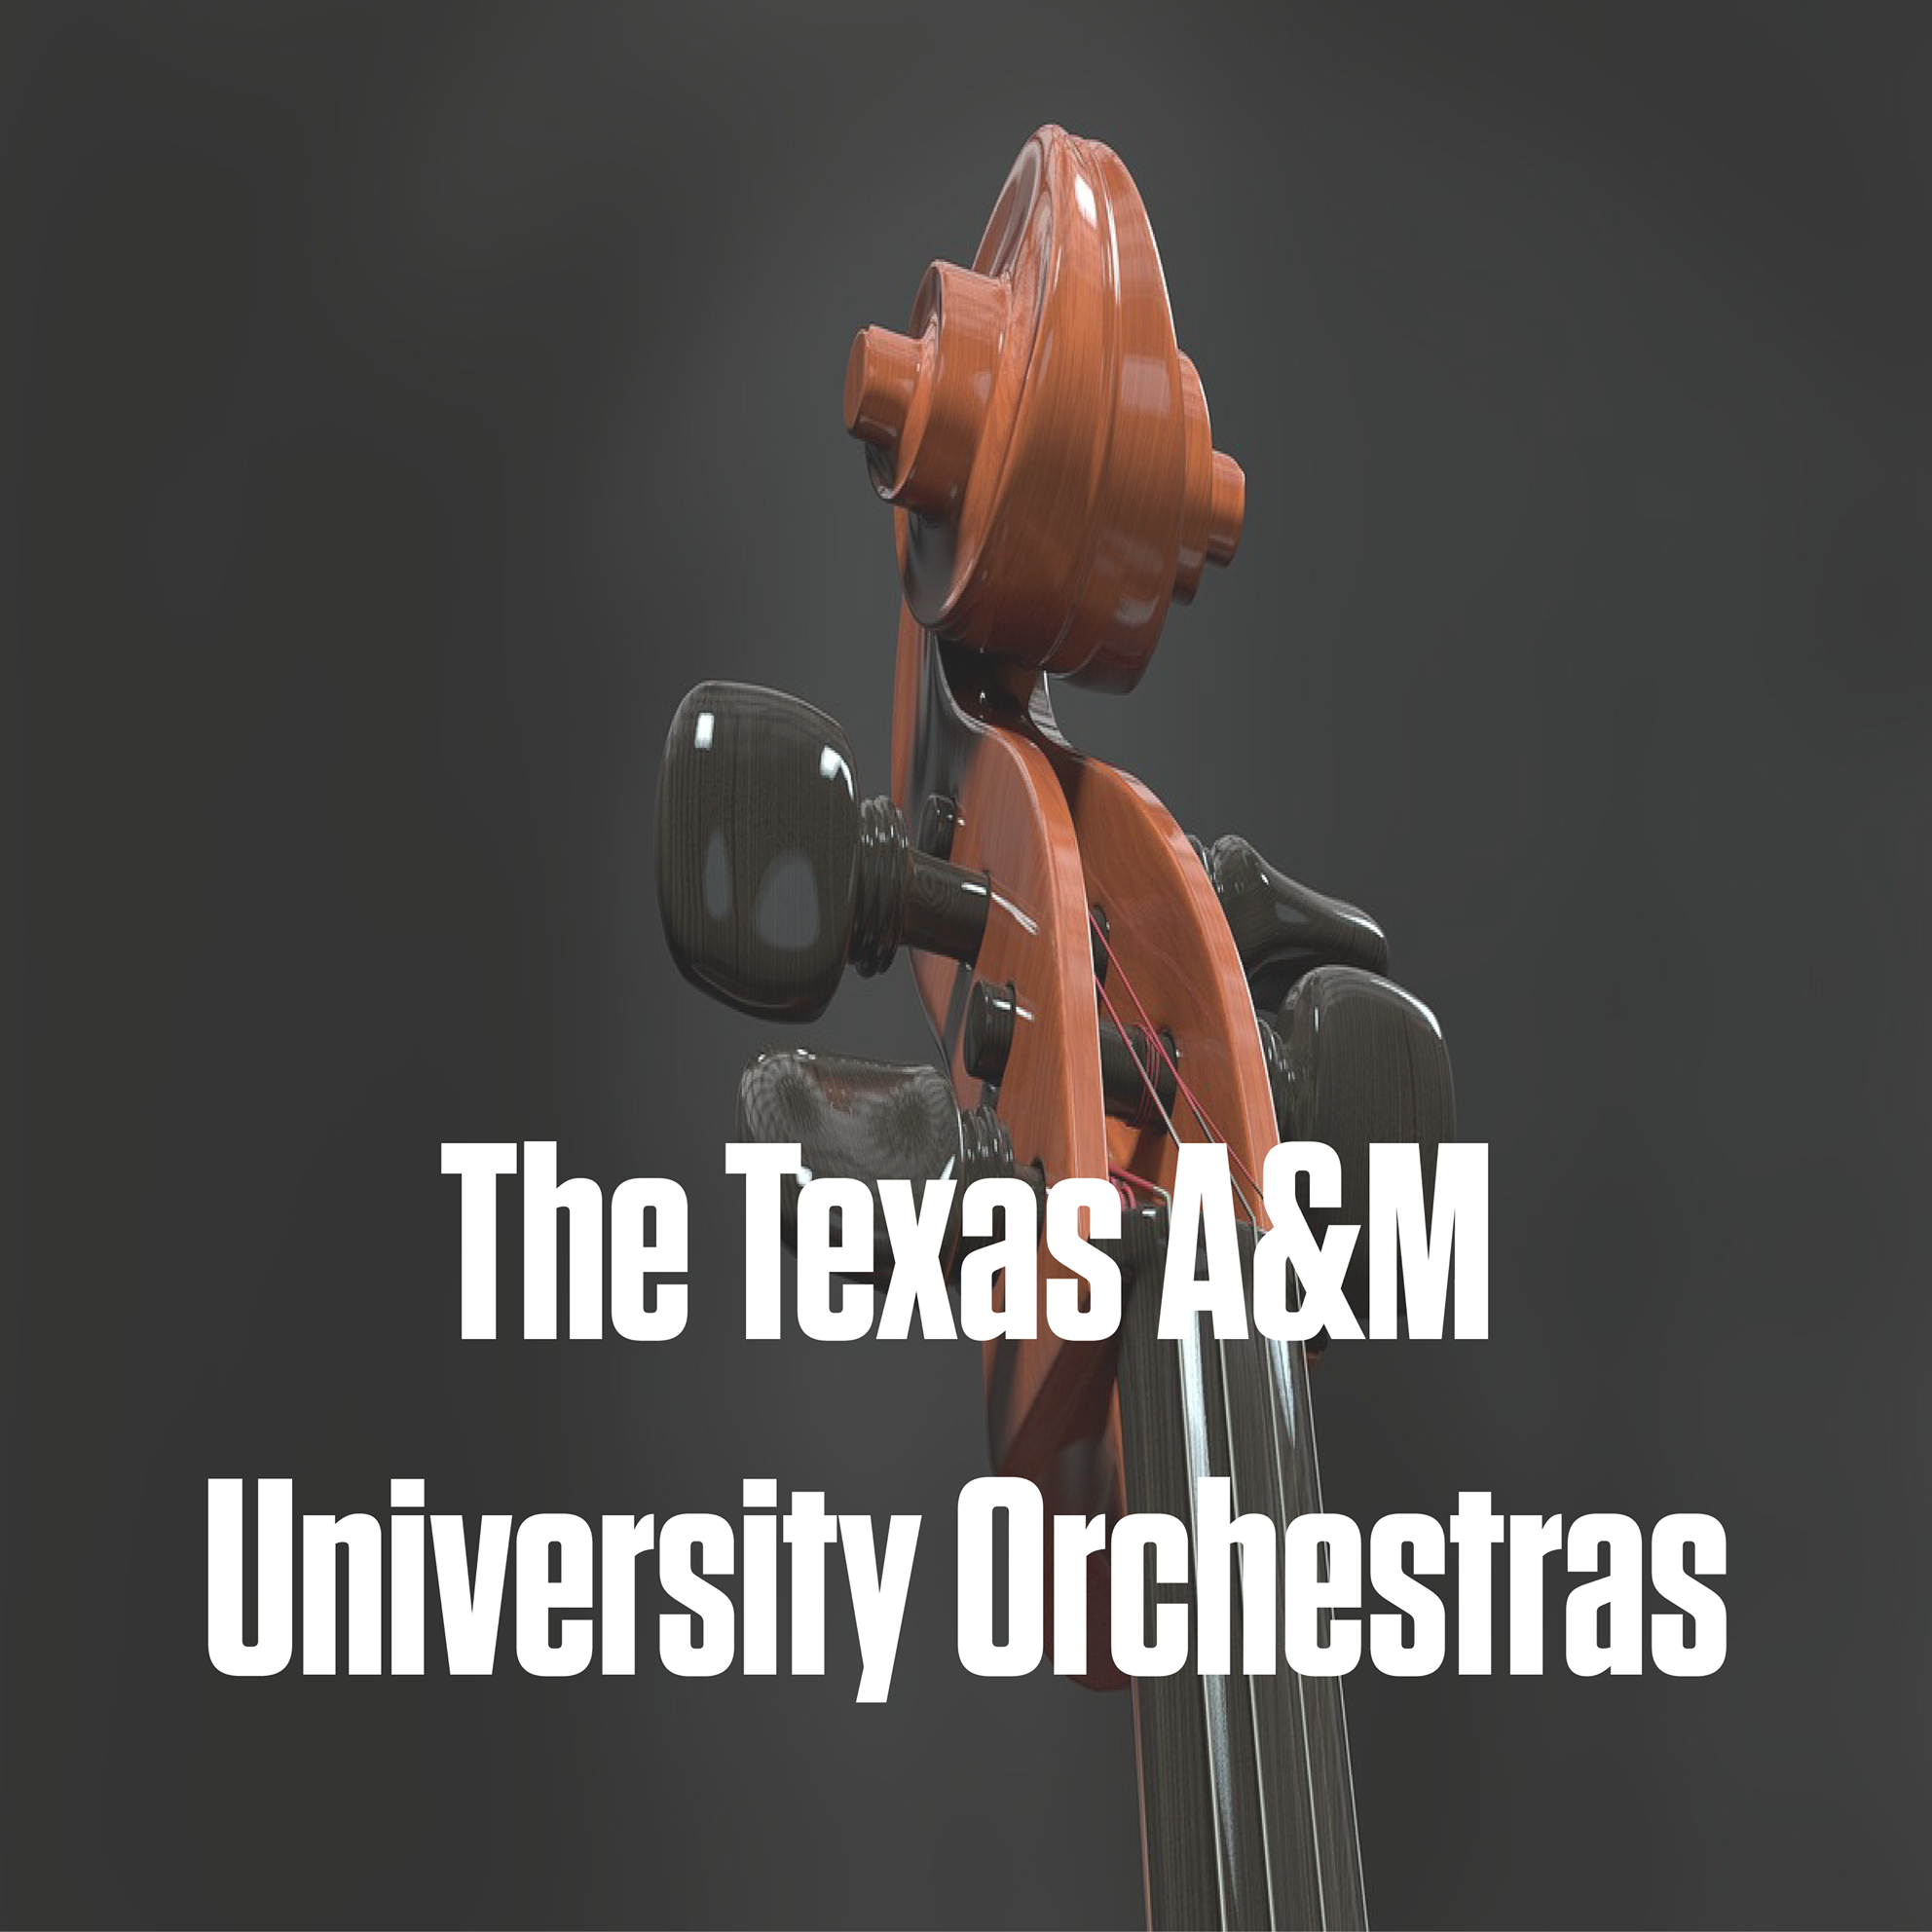 University Orchestras Concert- Rudder Theatre @ Rudder Theatre